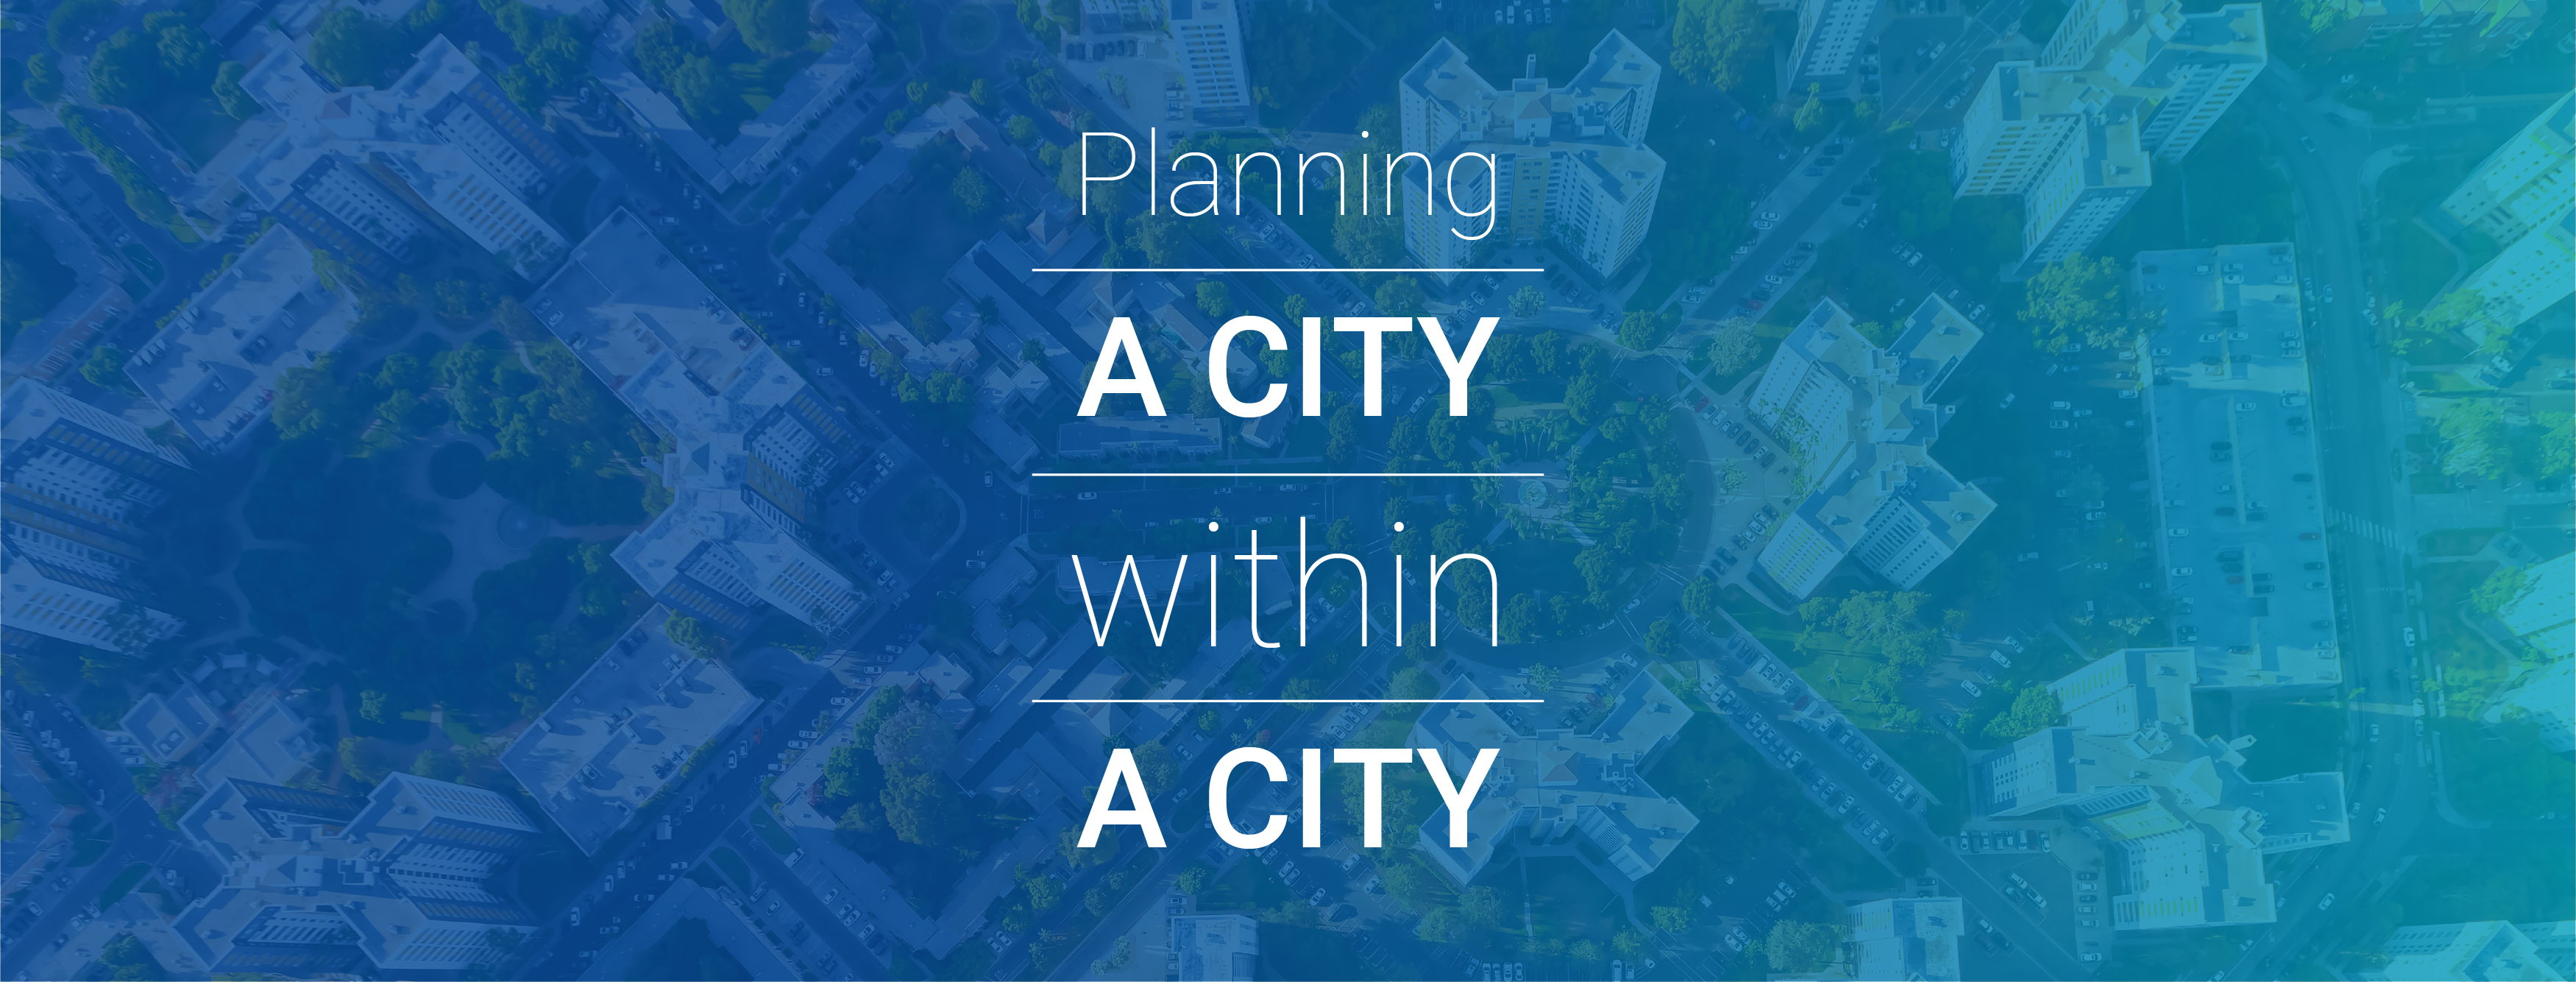 Planning a City within a City